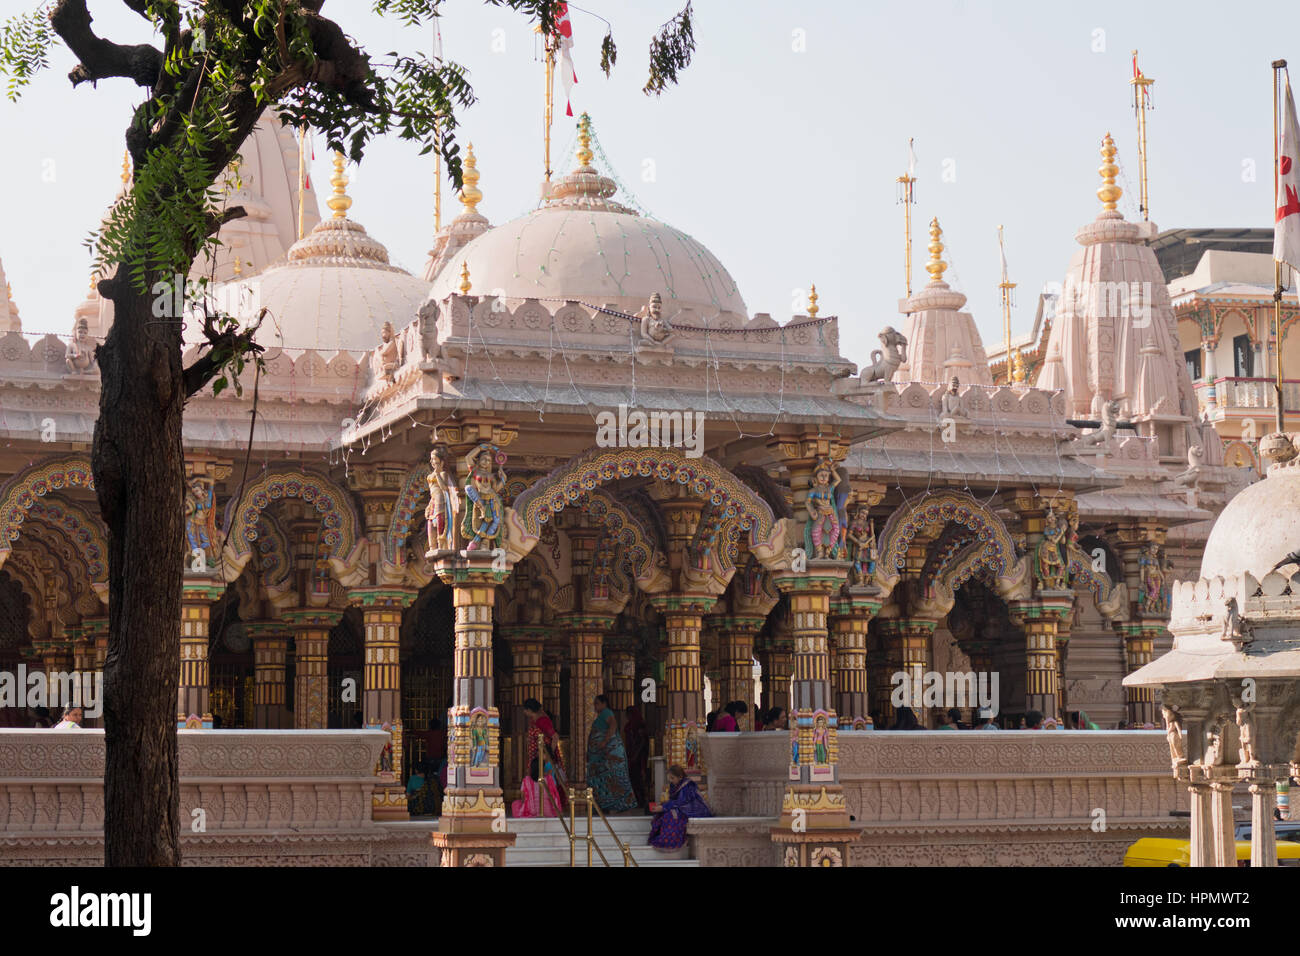 General view of the Hindu Shri Swaminarayan Hindu temple in Ahmedabad, India - Stock Image